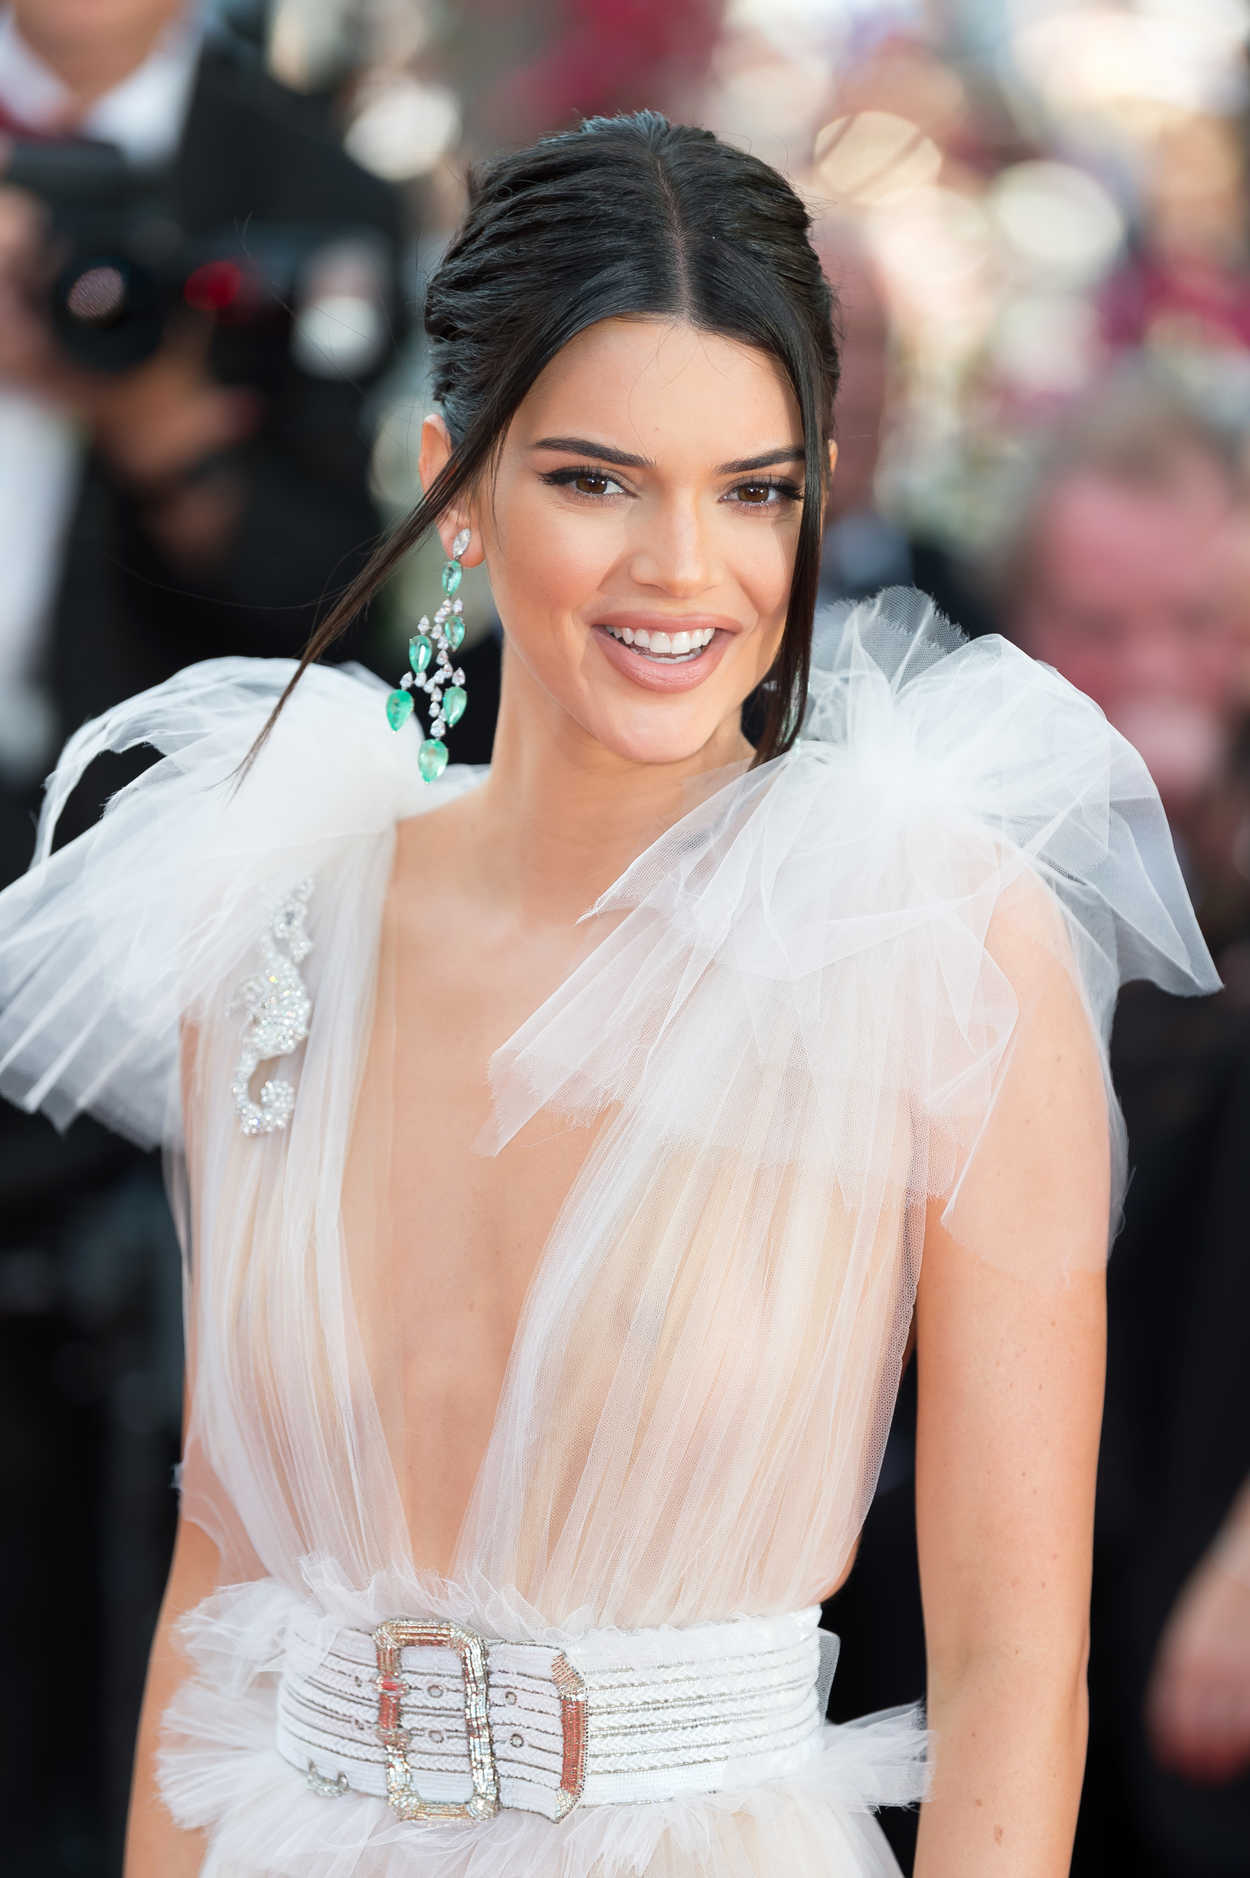 Kendall Jenner at the Girls of the Sun Premiere During the 71st Cannes Film Festival in Cannes 05/12/2018 – celebsla.com